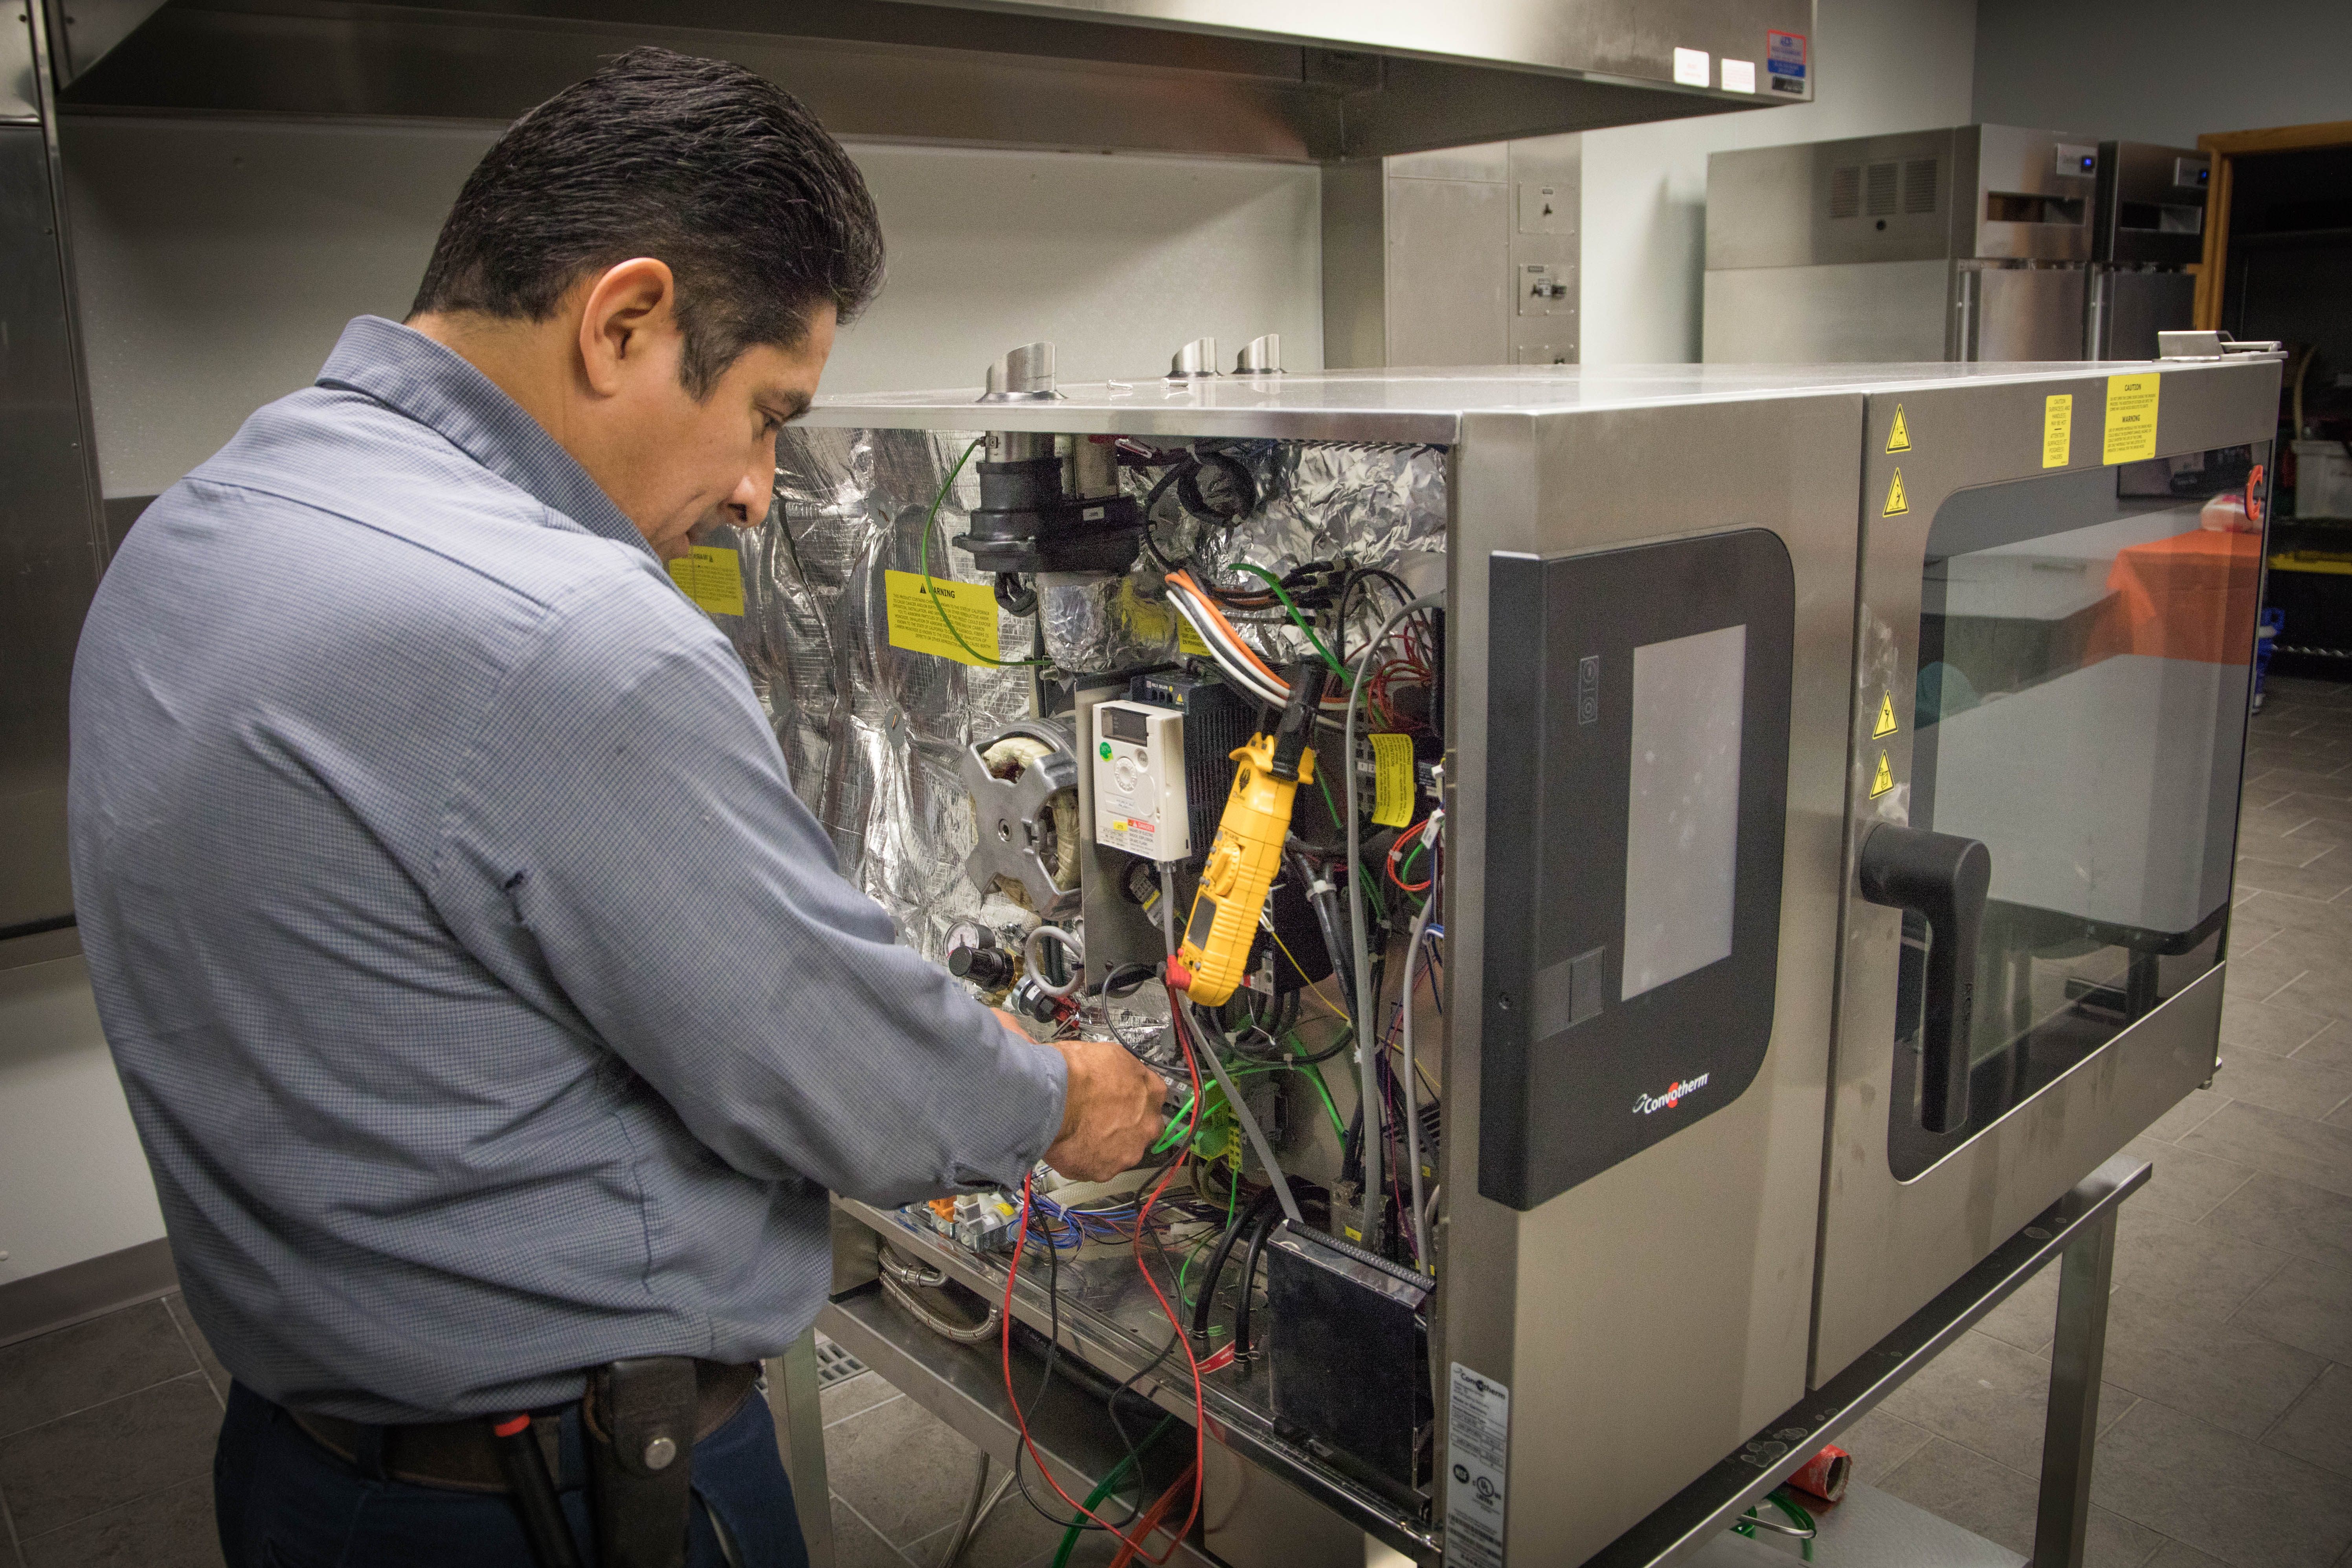 Food Equipment Commercial Appliance Repair Minneapolis General Parts Frigidaire Electricdryer 5995298980 To Give You Extra Peace Of Mind Every Employee Is Personally Committed Excellence In Customer Care Because We Recognize The Investment